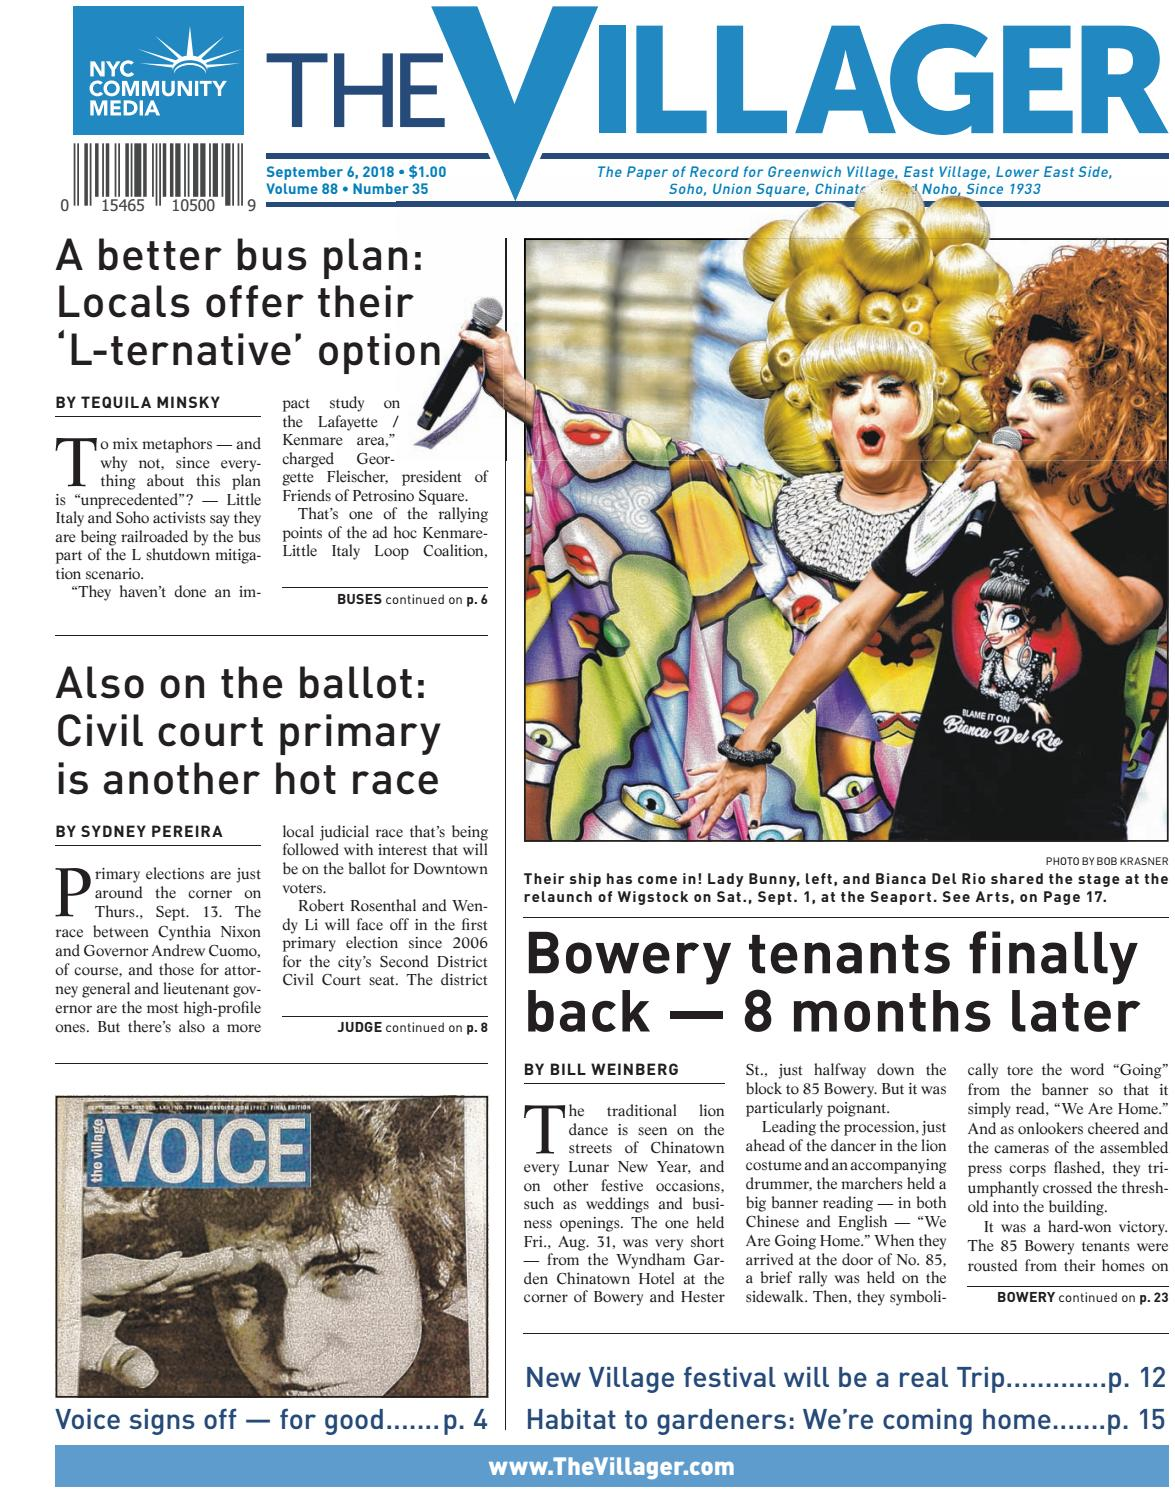 The Villager - September 6, 2018 by Schneps Media - issuu